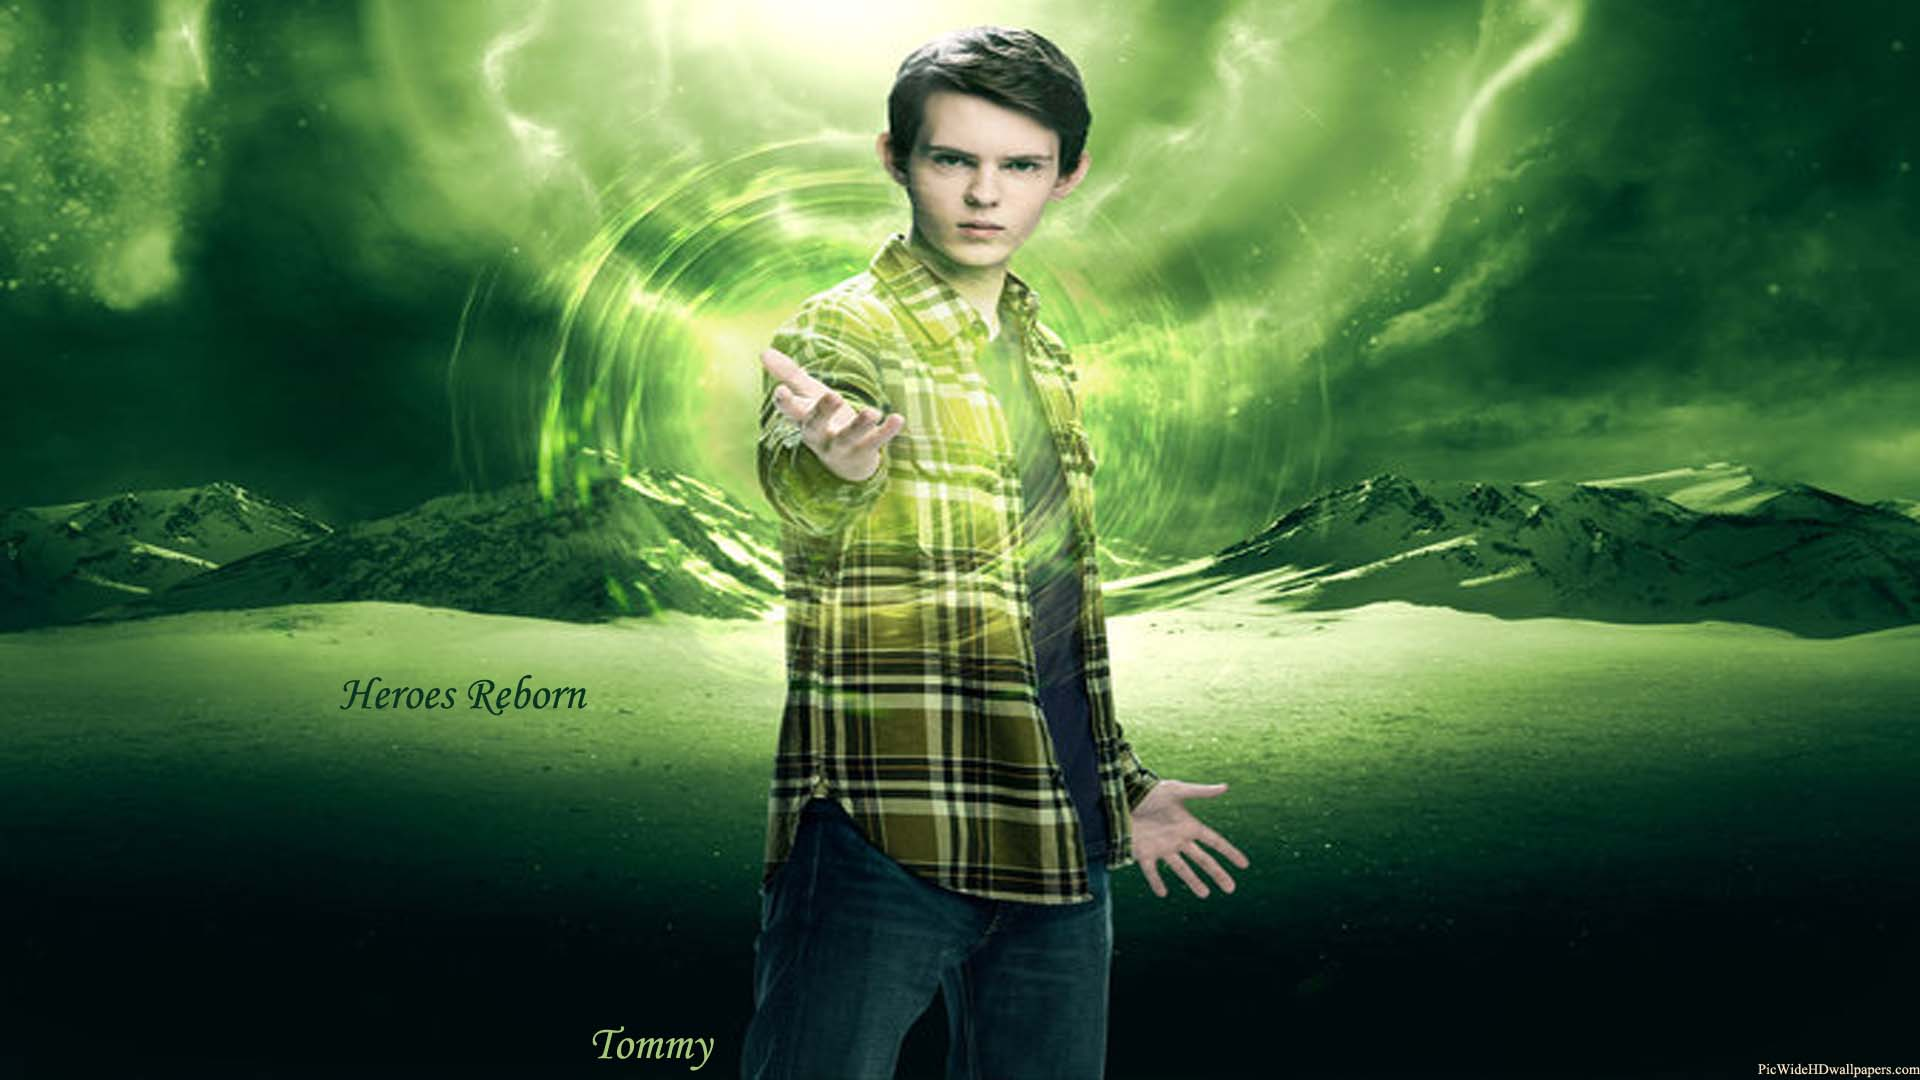 Download Robbie Kay As Tommy In Heroes Reborn Tv Series Wallpaper 1920x1080